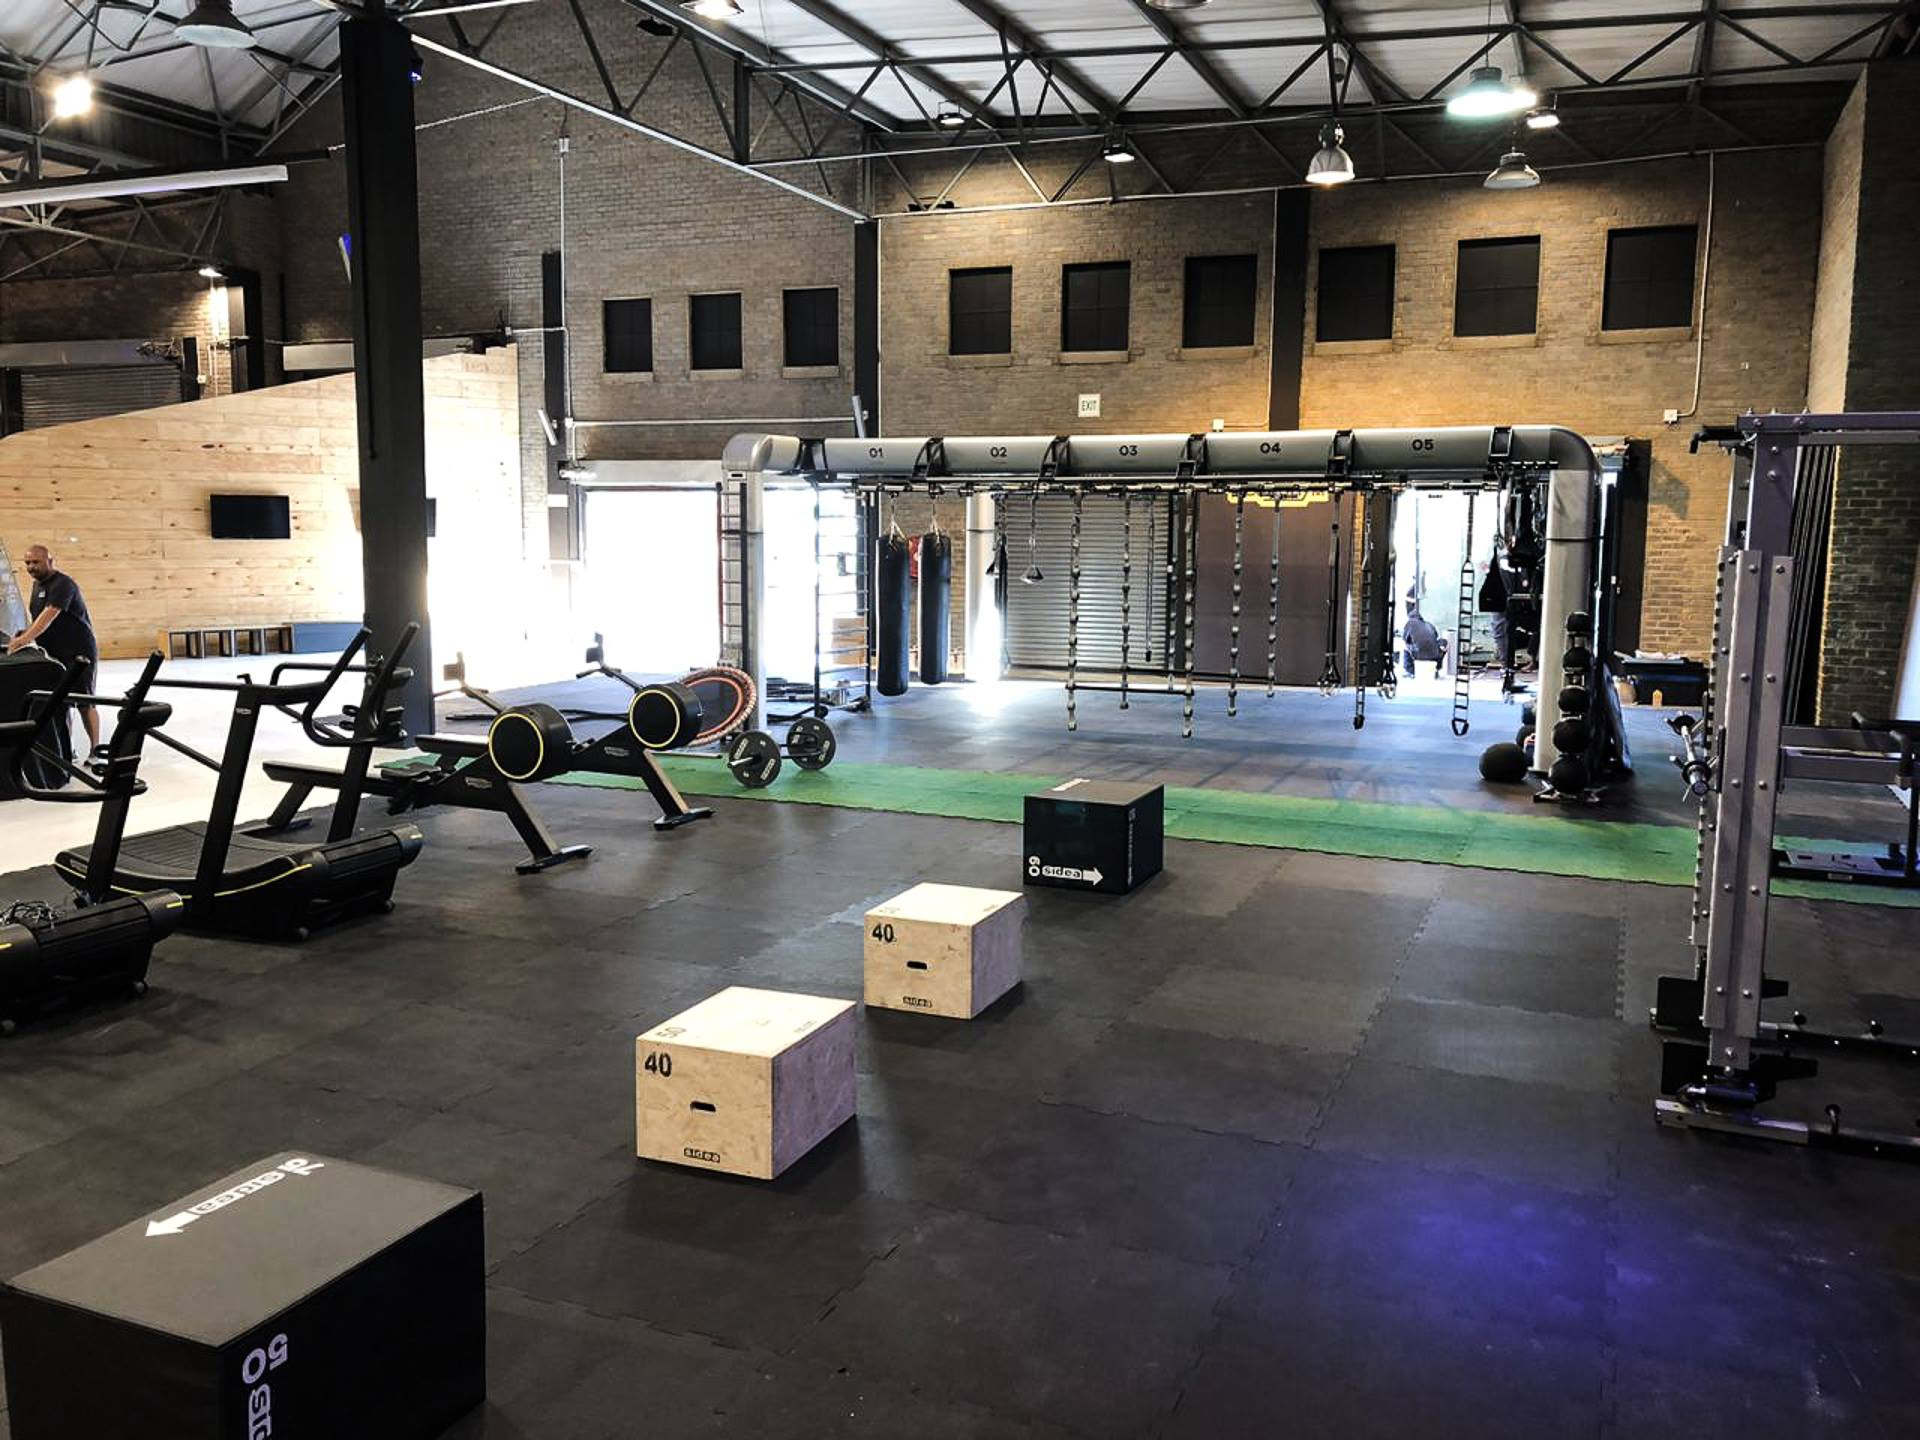 EFC PERFORMANCE INSTITUTE - JOHANNESBURG (SOUTH AFRICA)